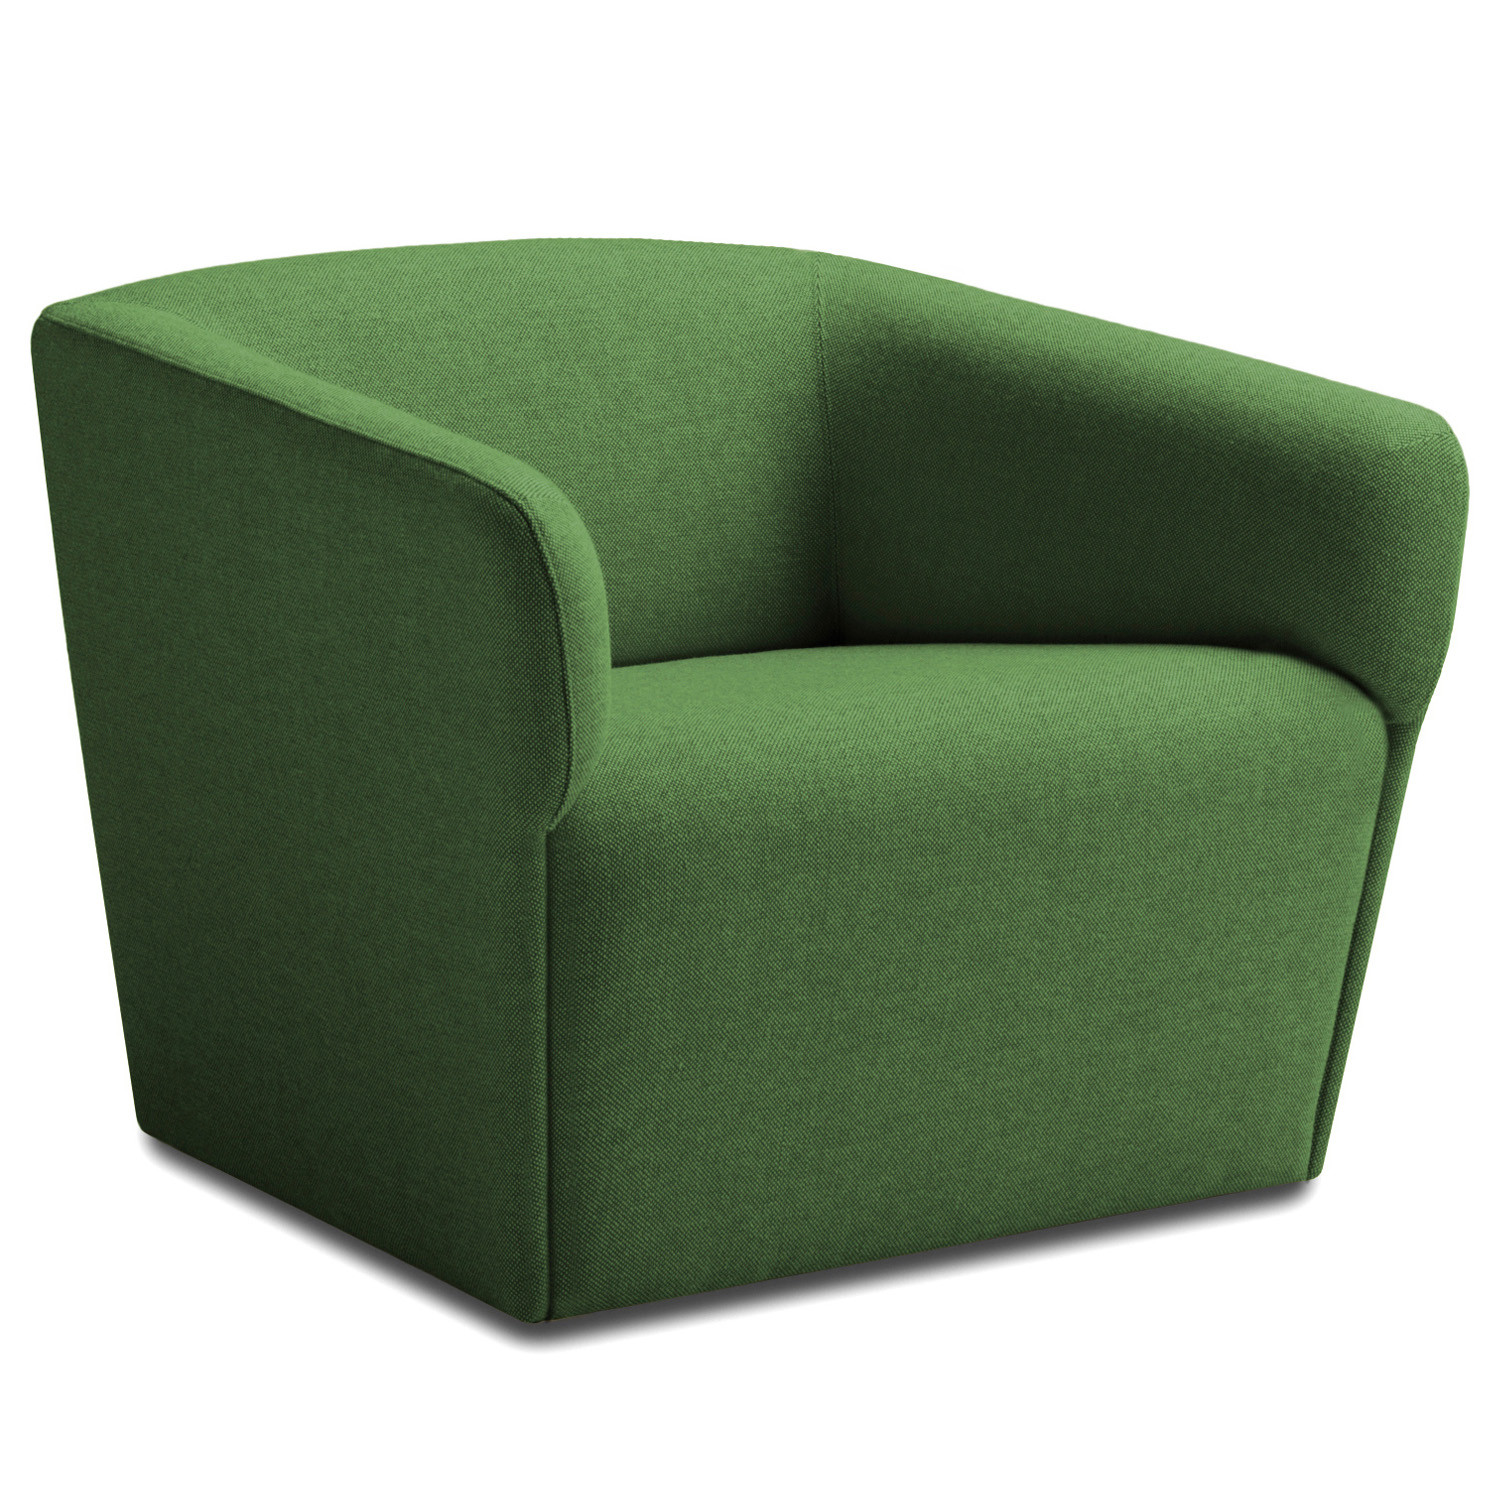 Tonic Lounge Easychair in Green